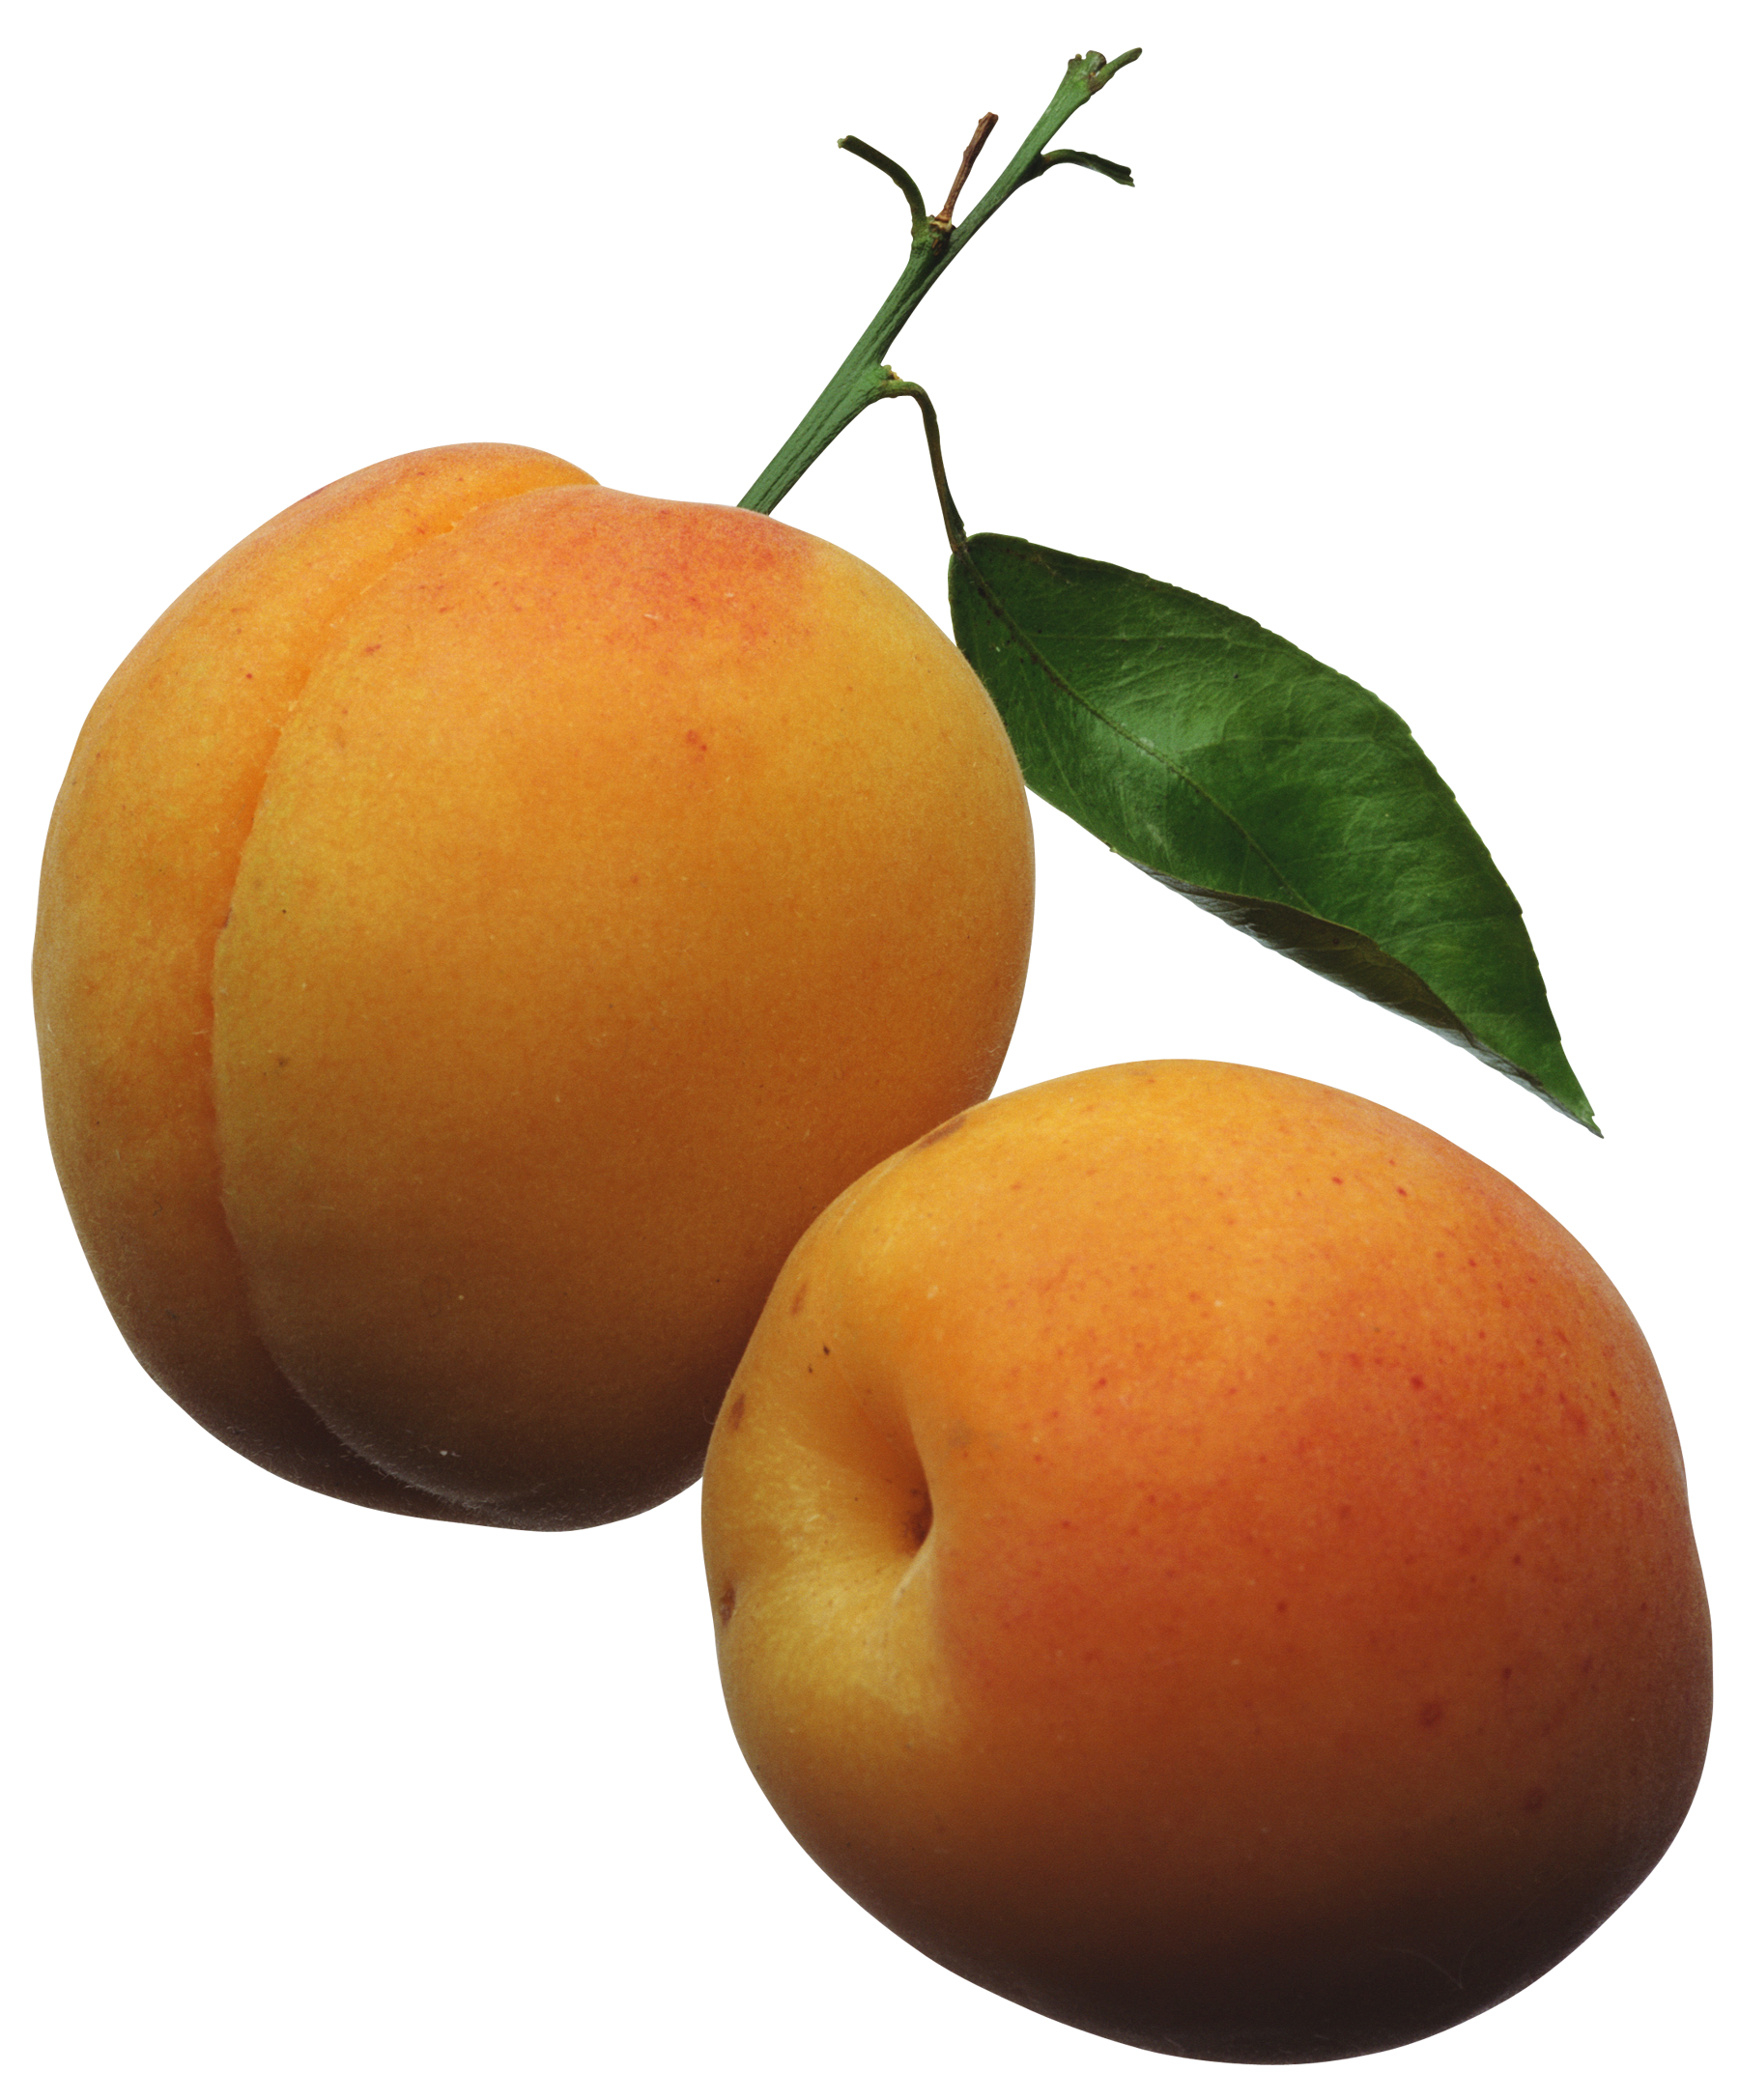 Apricot clipart #2, Download drawings